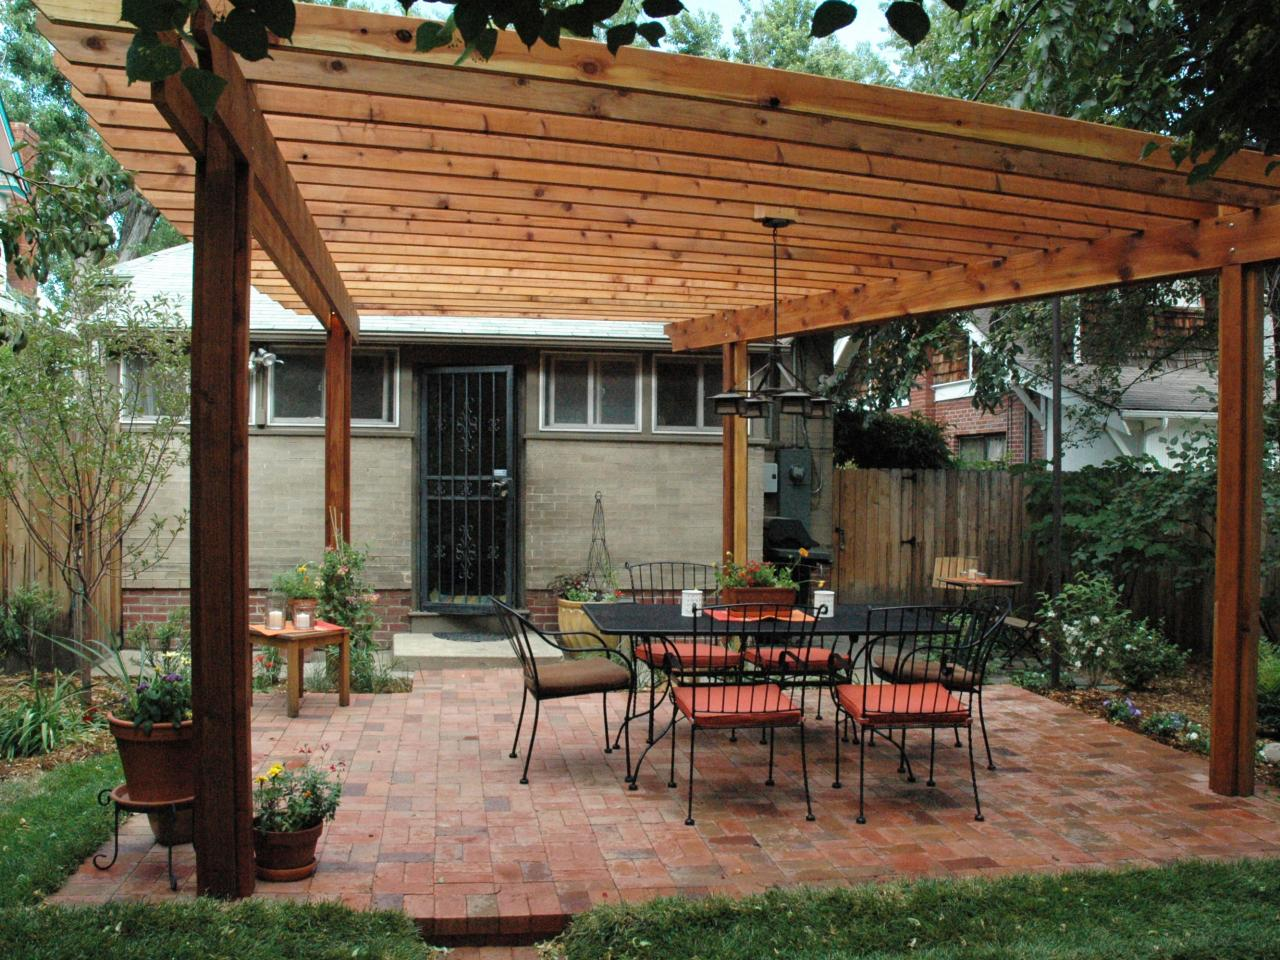 How to Build a Wood Pergola - How To Build A Wood Pergola HGTV